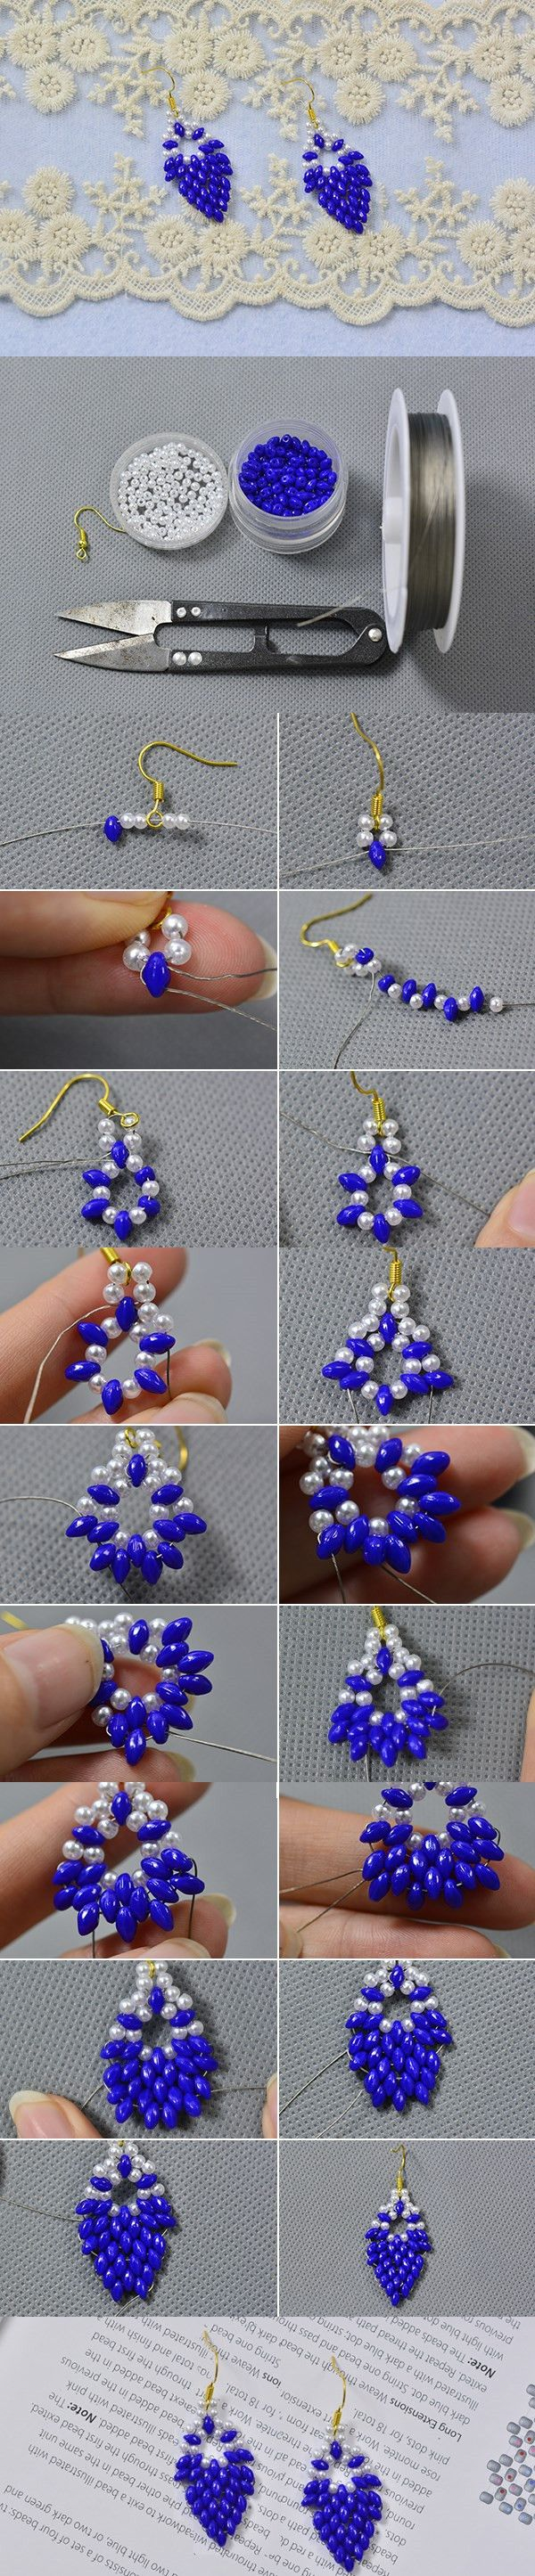 DIY Purple Bead Earrings with Seed Beads and Pearl Beads